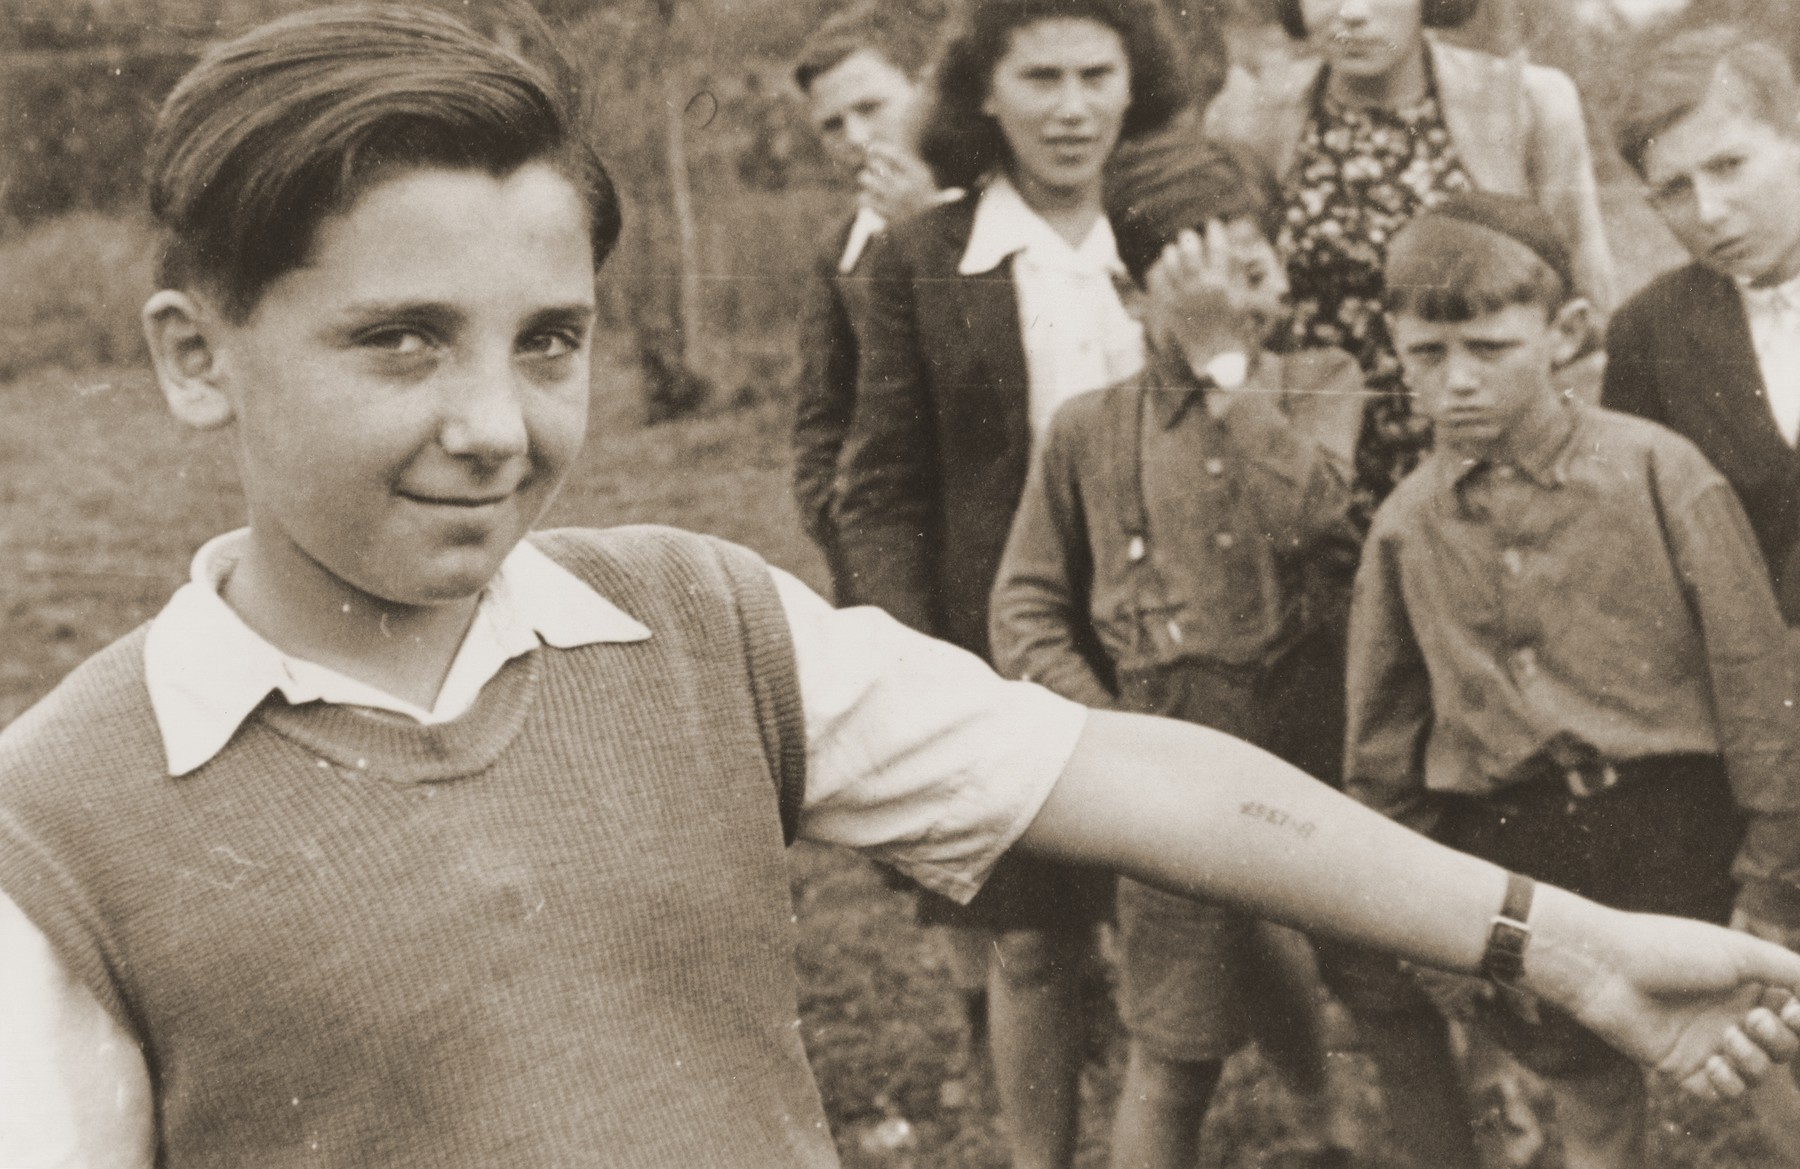 A boy displays the tattooed number on his arm to the photographer, while other children at the Neu Freimann displaced persons camp look on.